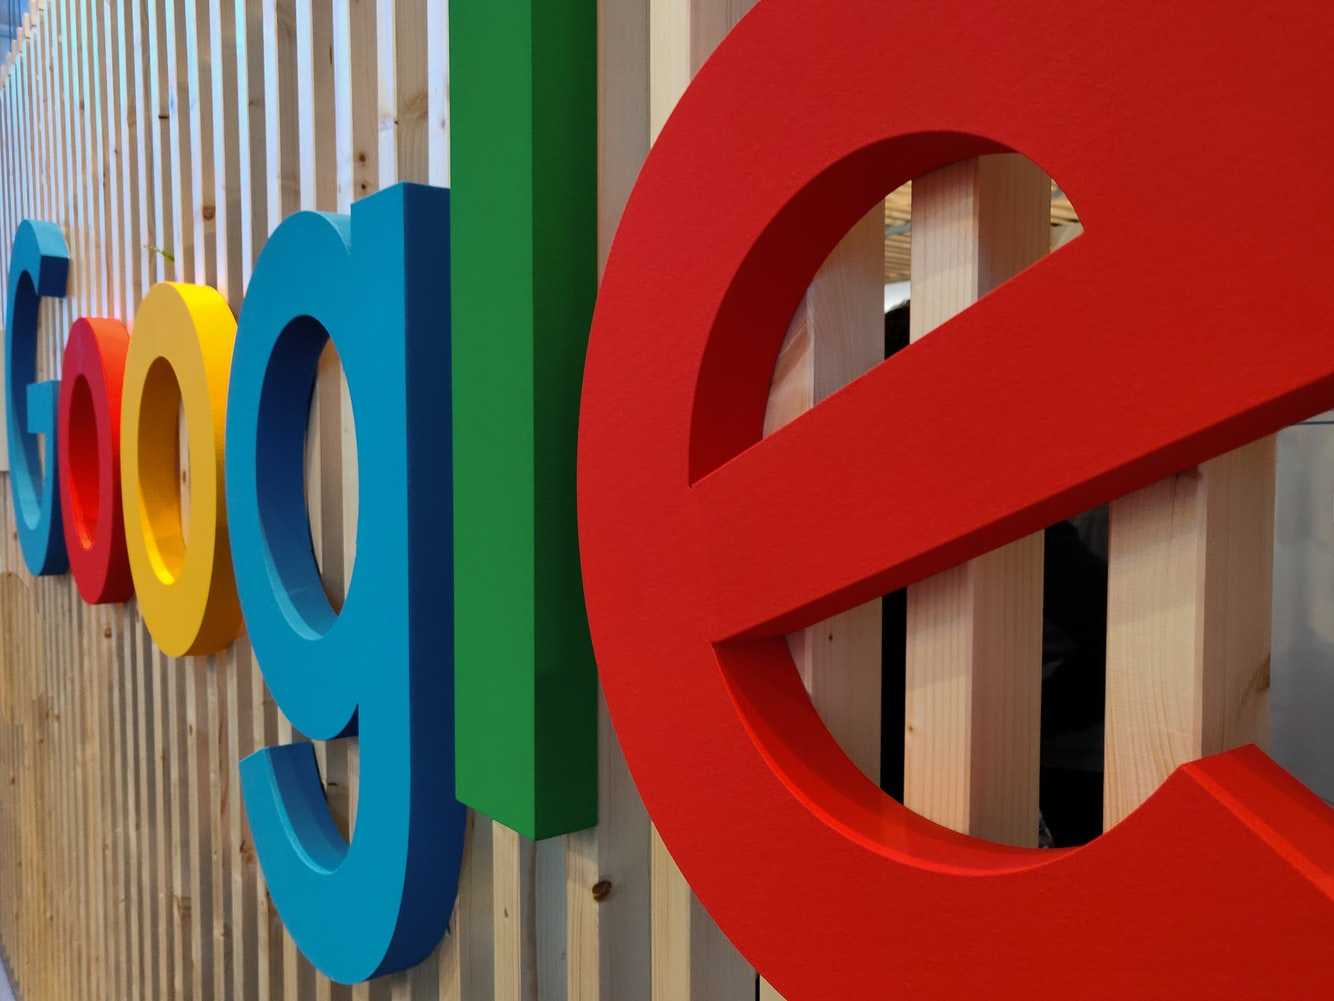 Google is one of the most recognizable brands in the world